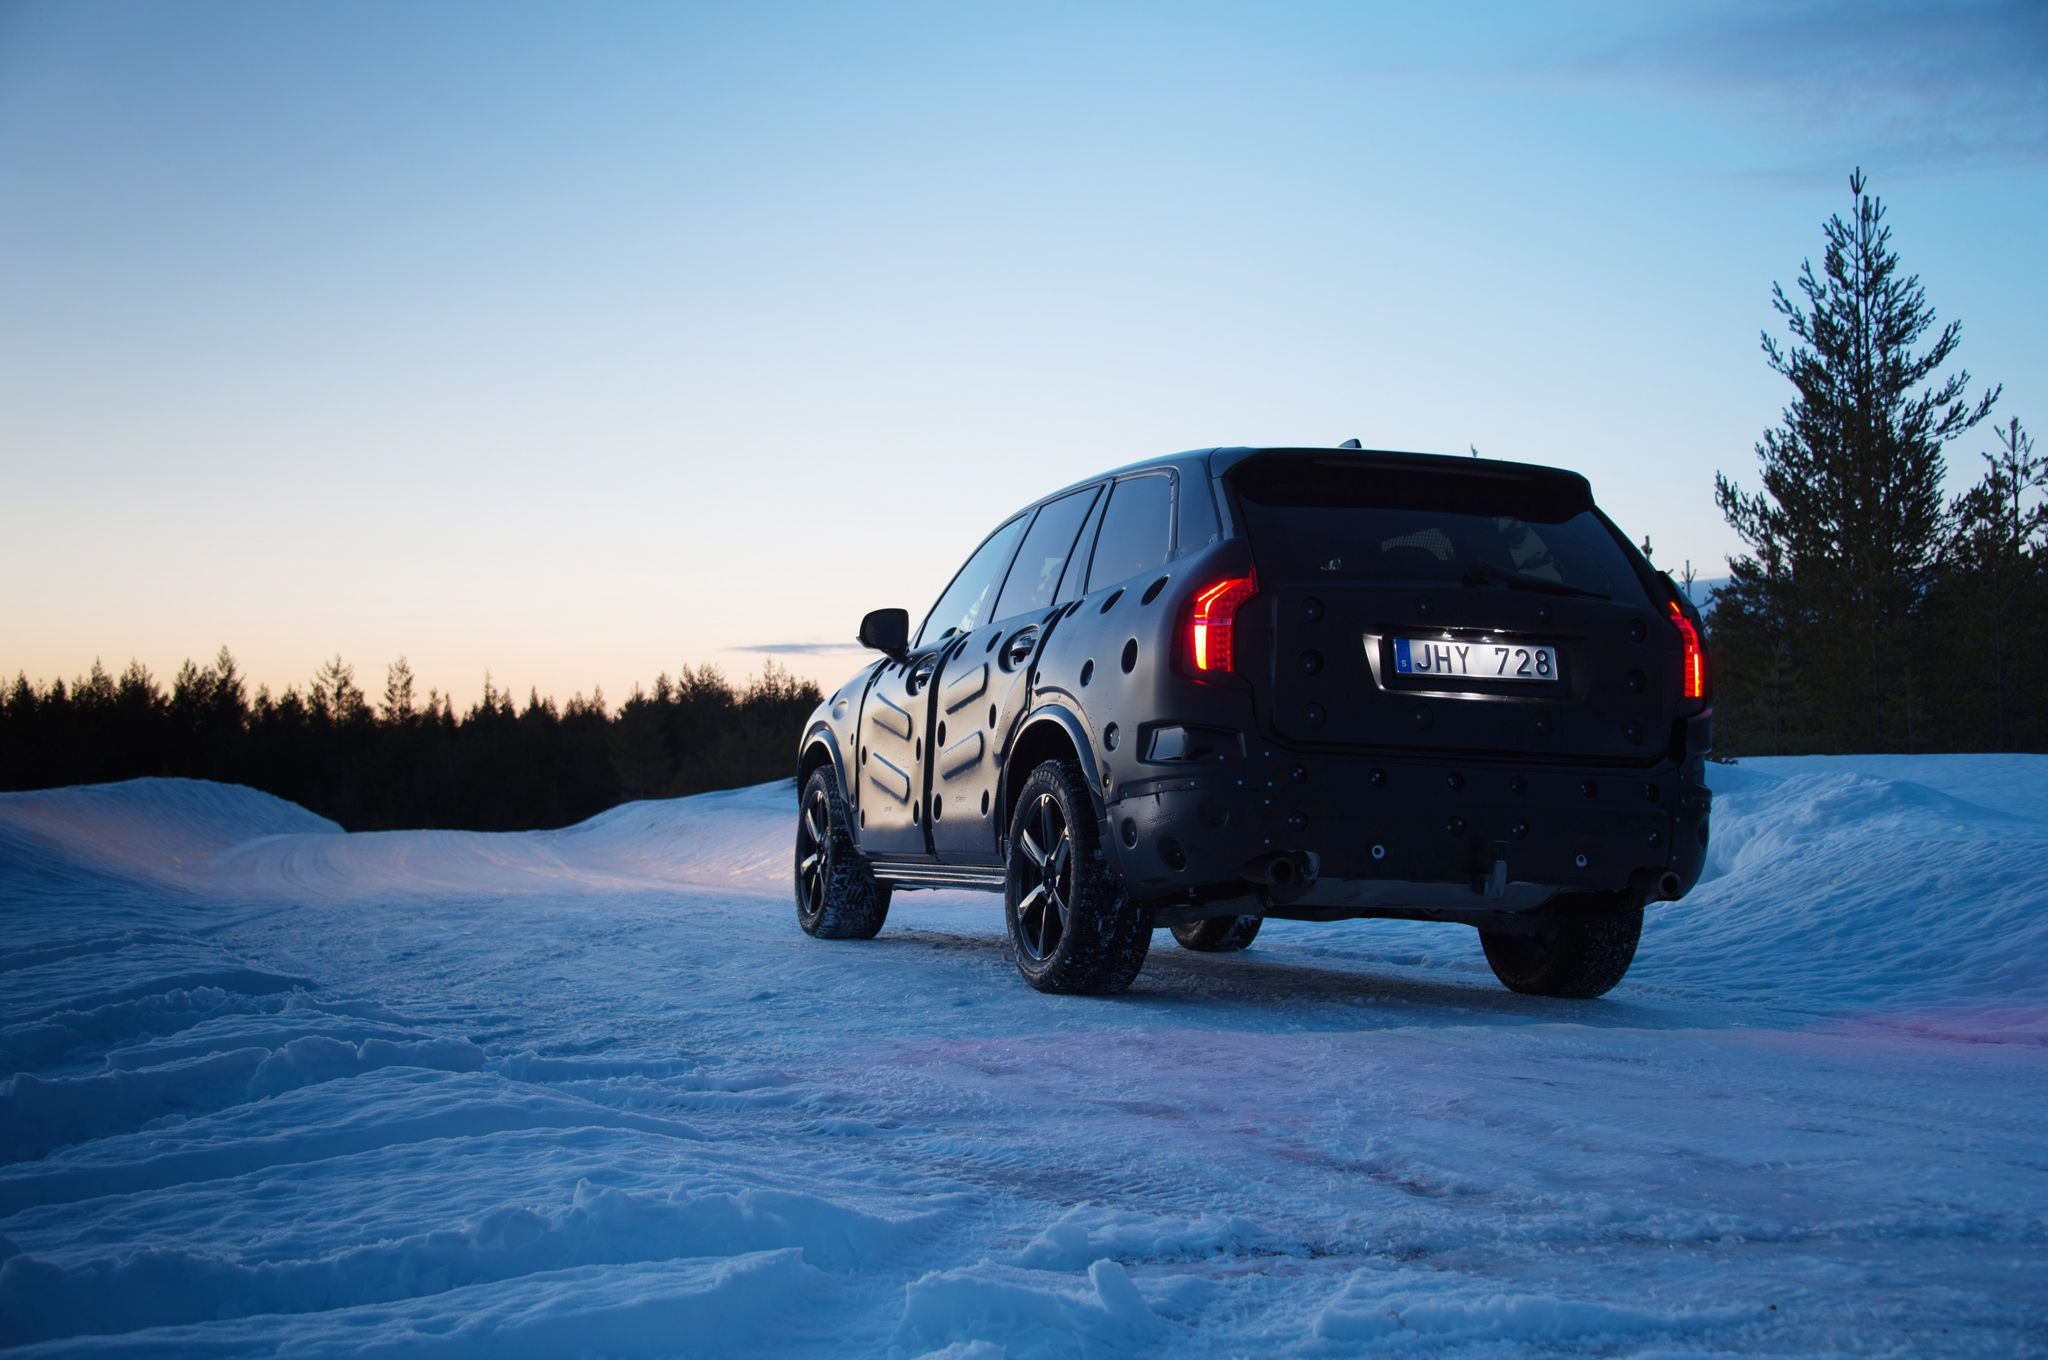 2016 Volvo XC90 Wallpapers Attachment 10363   Grivucom 2048x1360